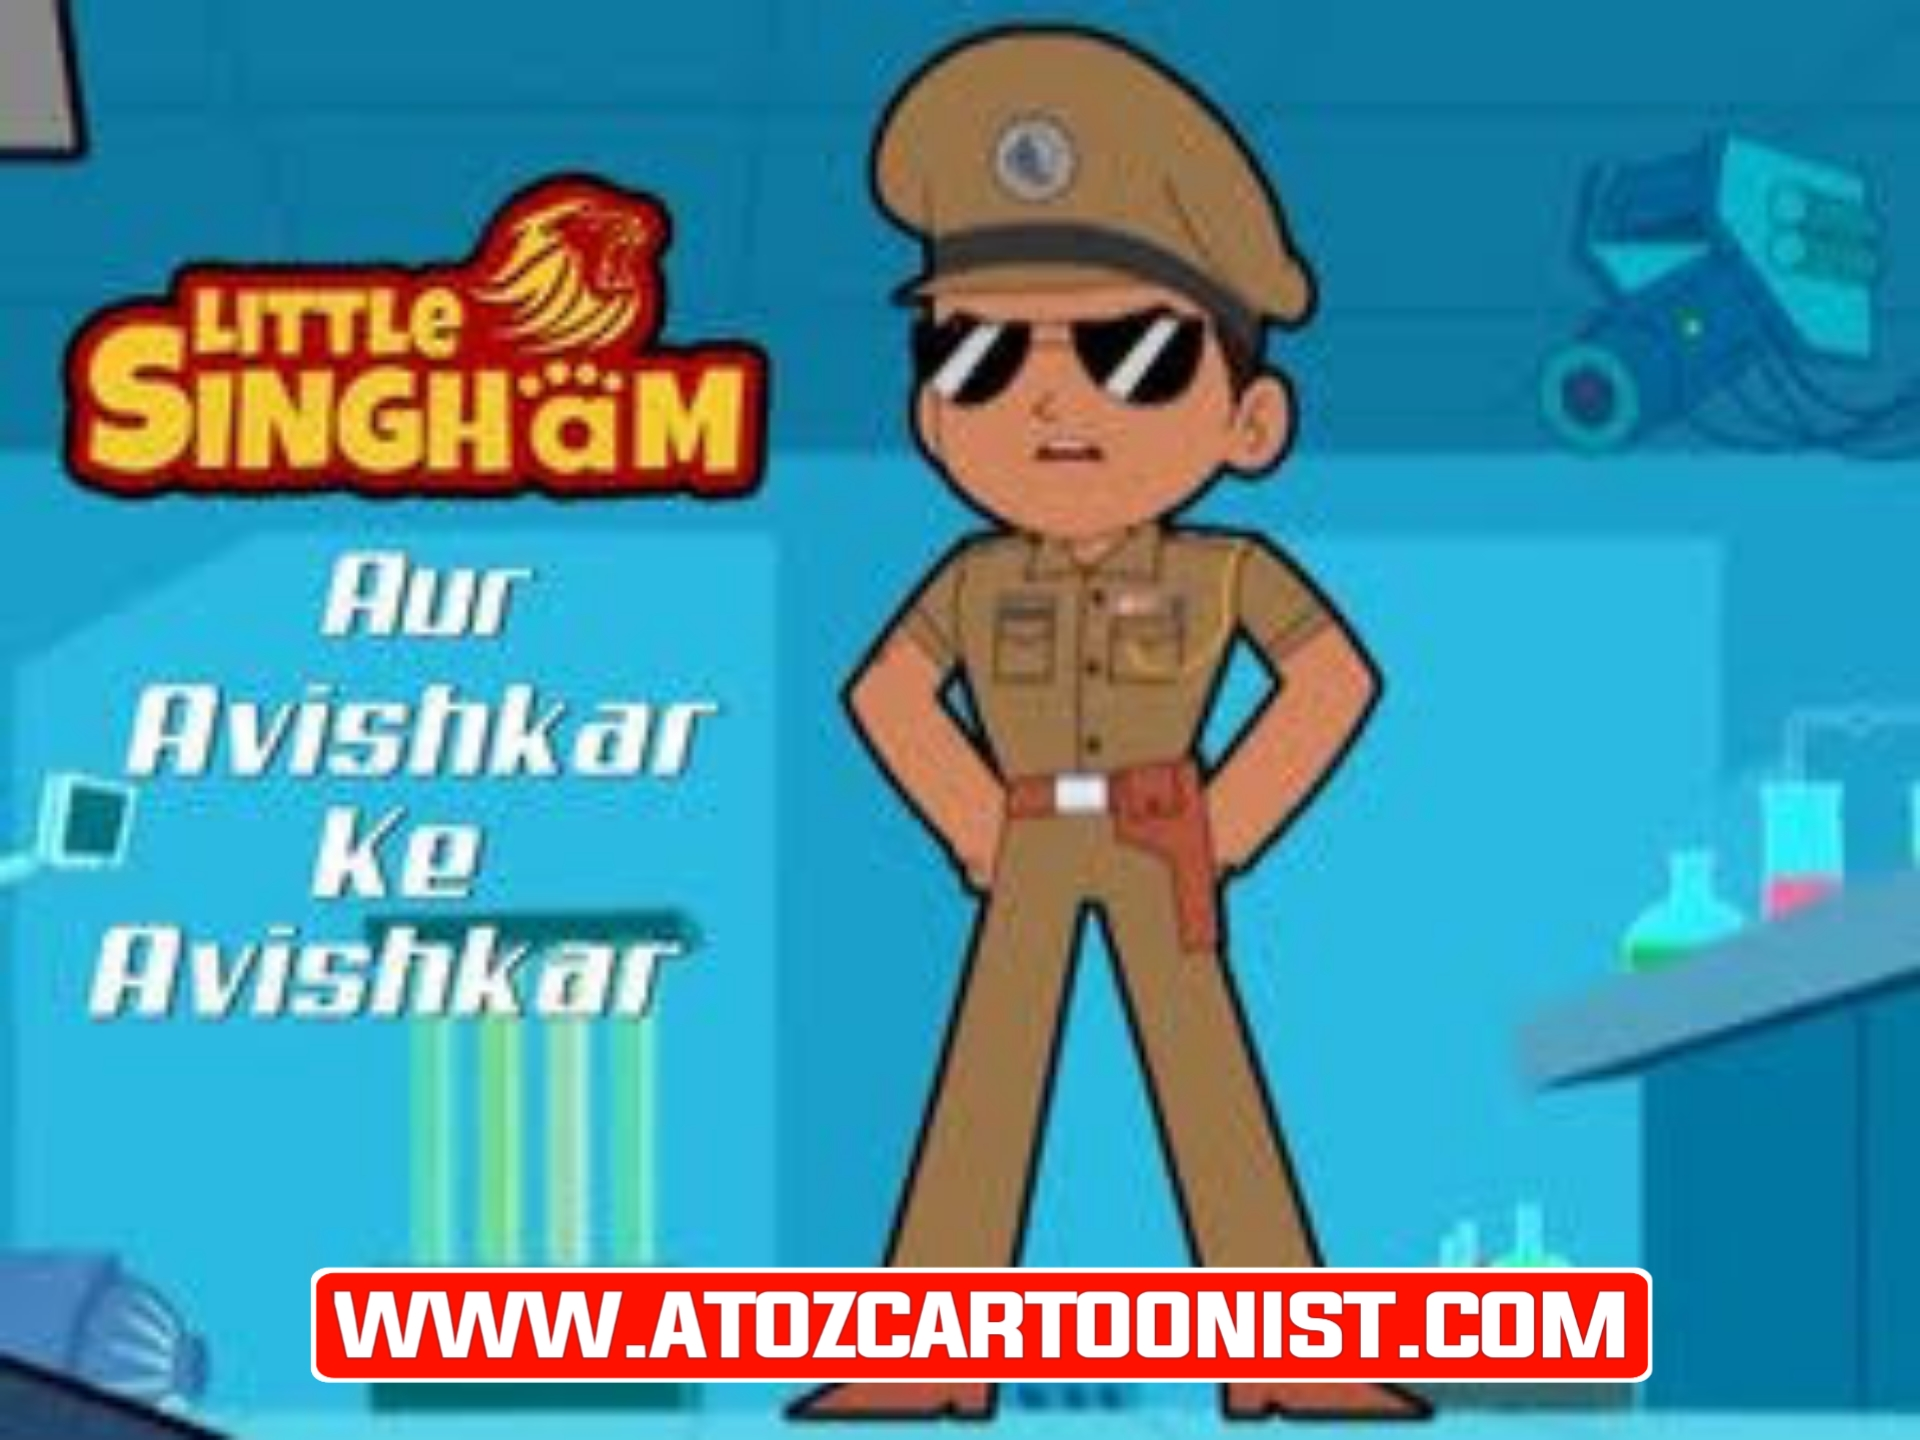 LITTLE SINGHAM : AUR AVISHKAR KE AVISHKAR FULL MOVIE IN HINDI DOWNLOAD IN [480P HALF HD]